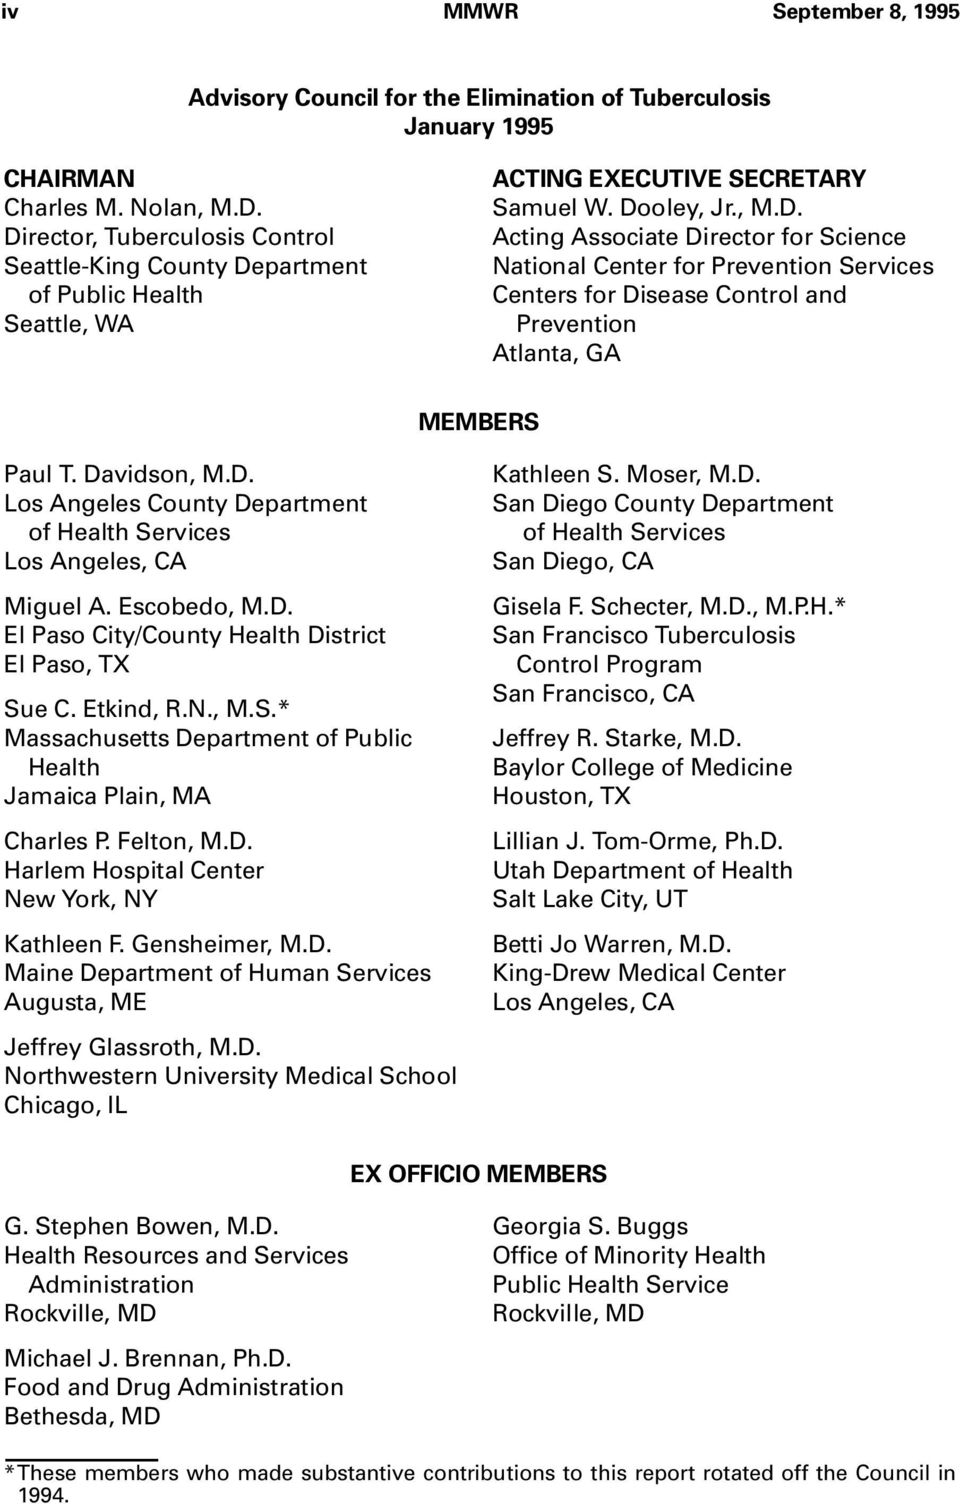 Davidson, M.D. Los Angeles County Department of Health Services Los Angeles, CA Miguel A. Escobedo, M.D. El Paso City/County Health District El Paso, TX Sue C. Etkind, R.N., M.S.* Massachusetts Department of Public Health Jamaica Plain, MA Charles P.